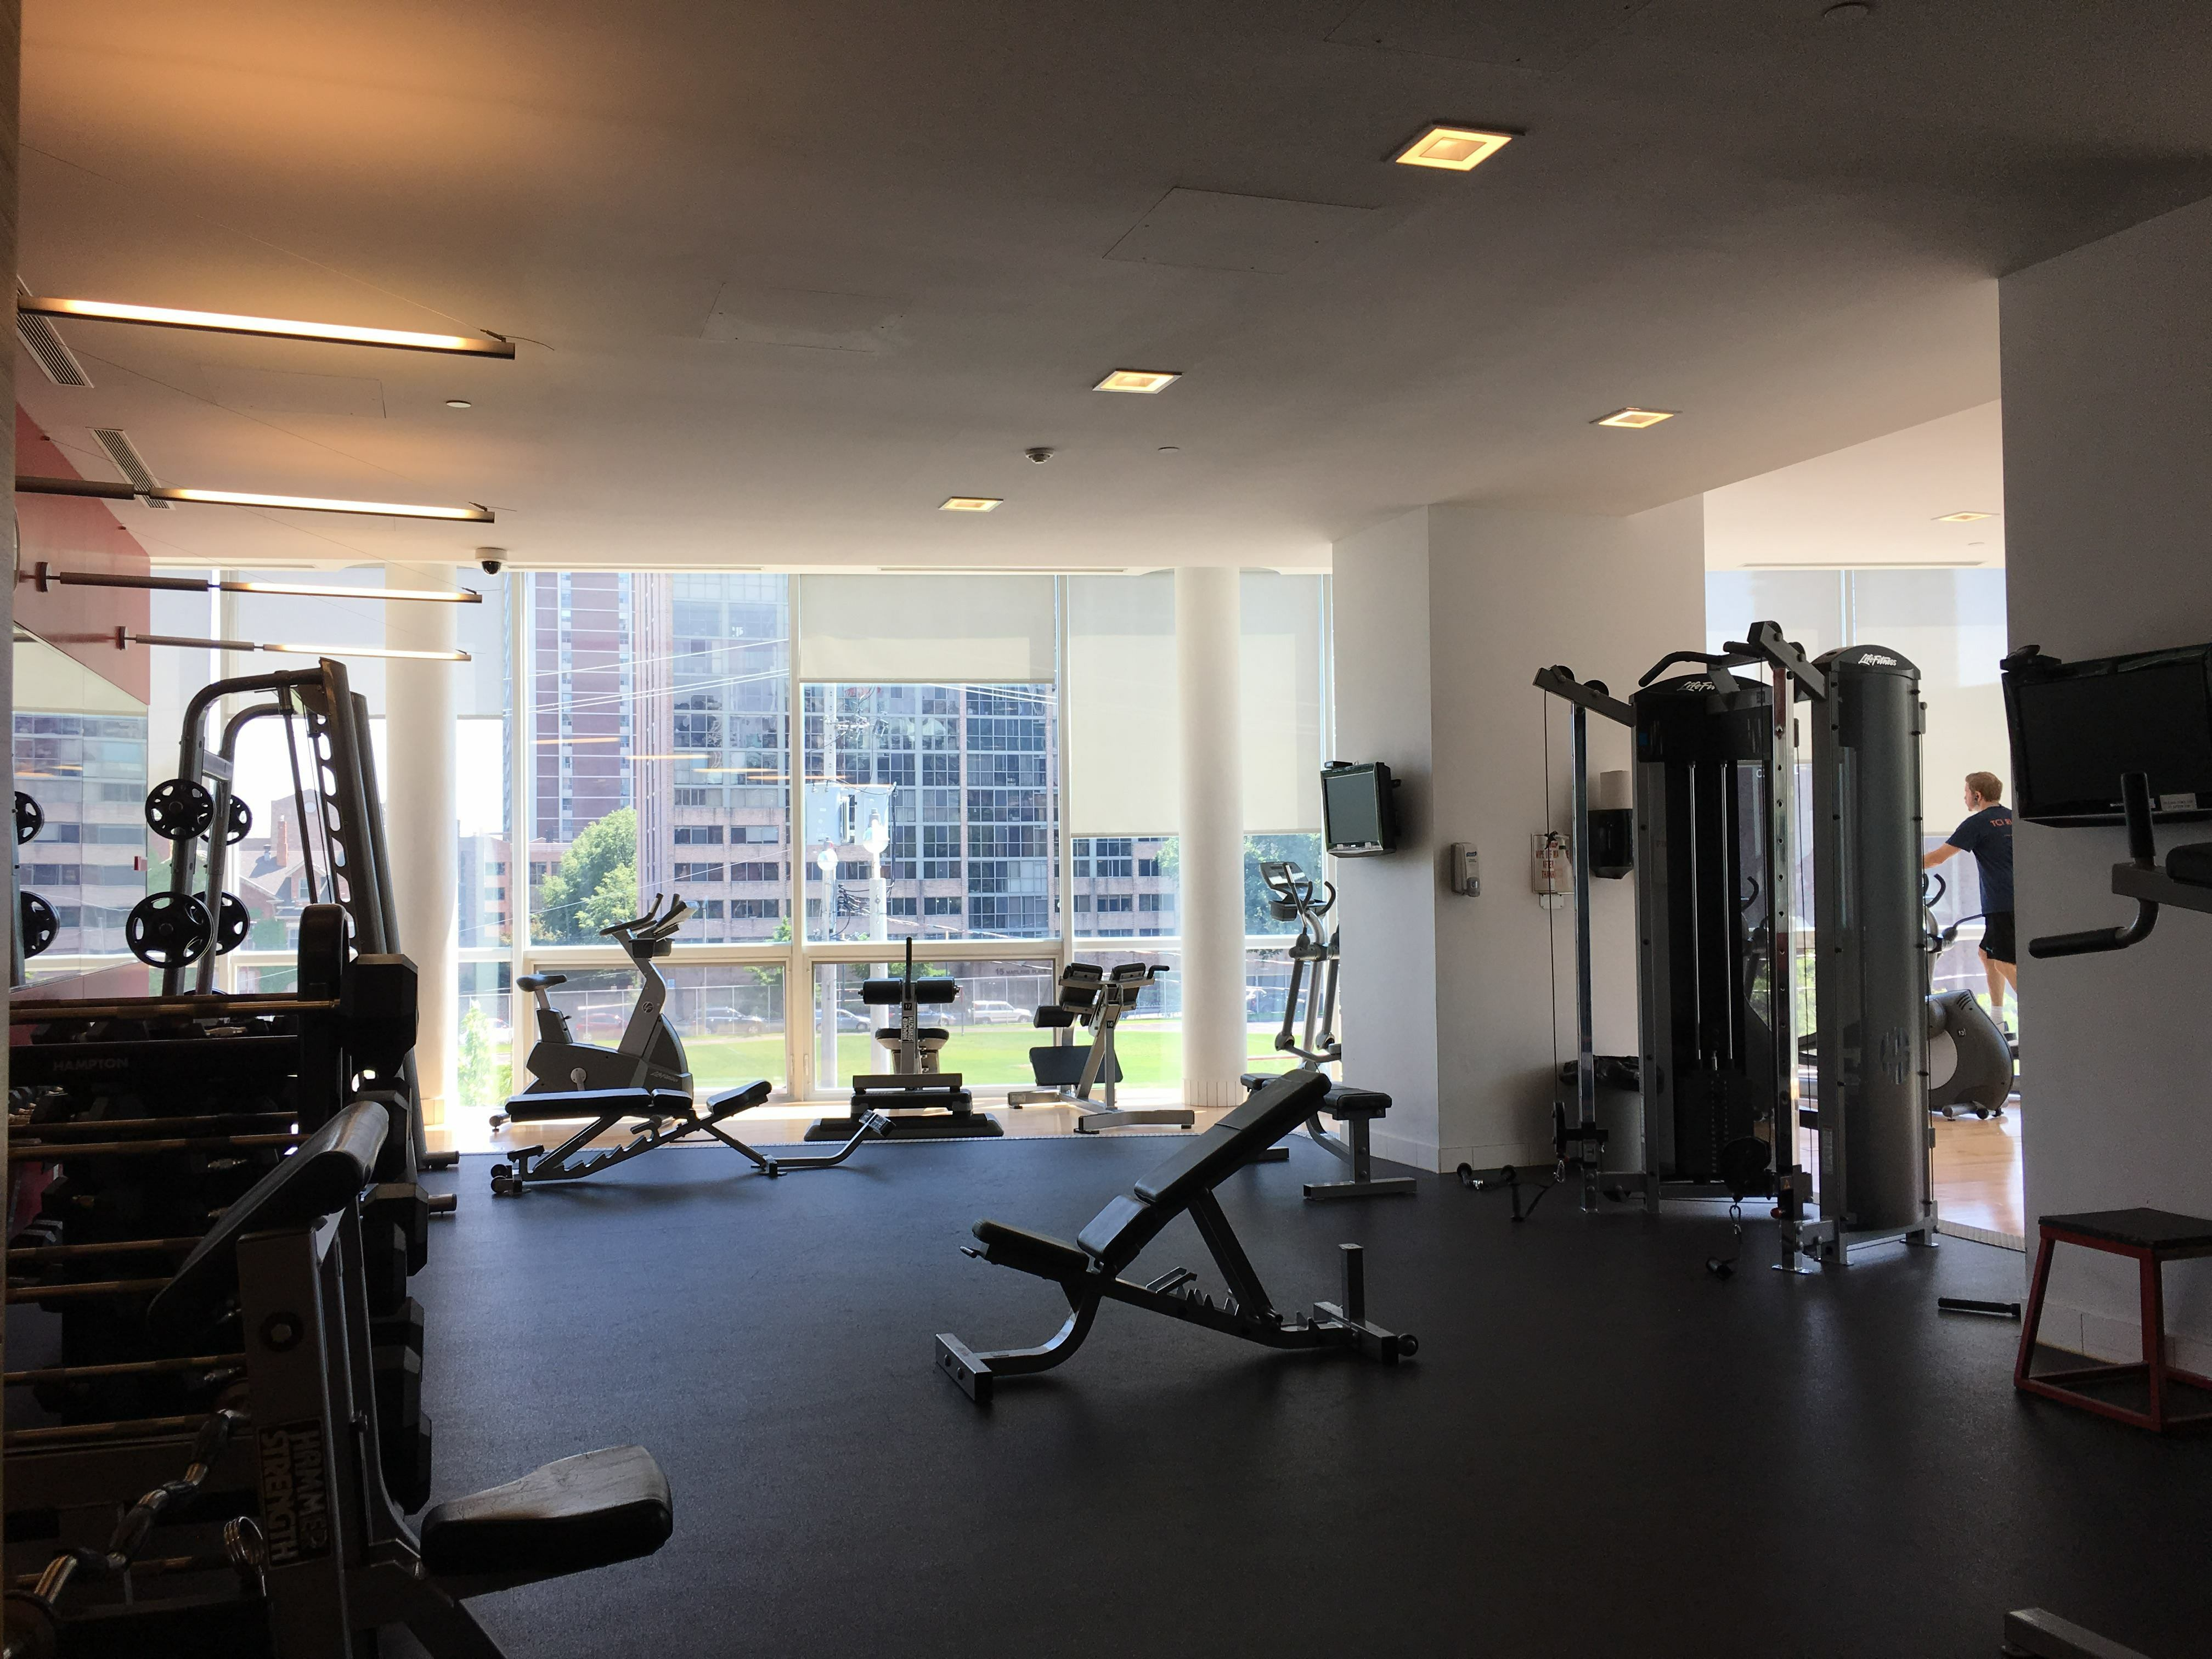 Summer Sublet downtown Toronto - FEMALES